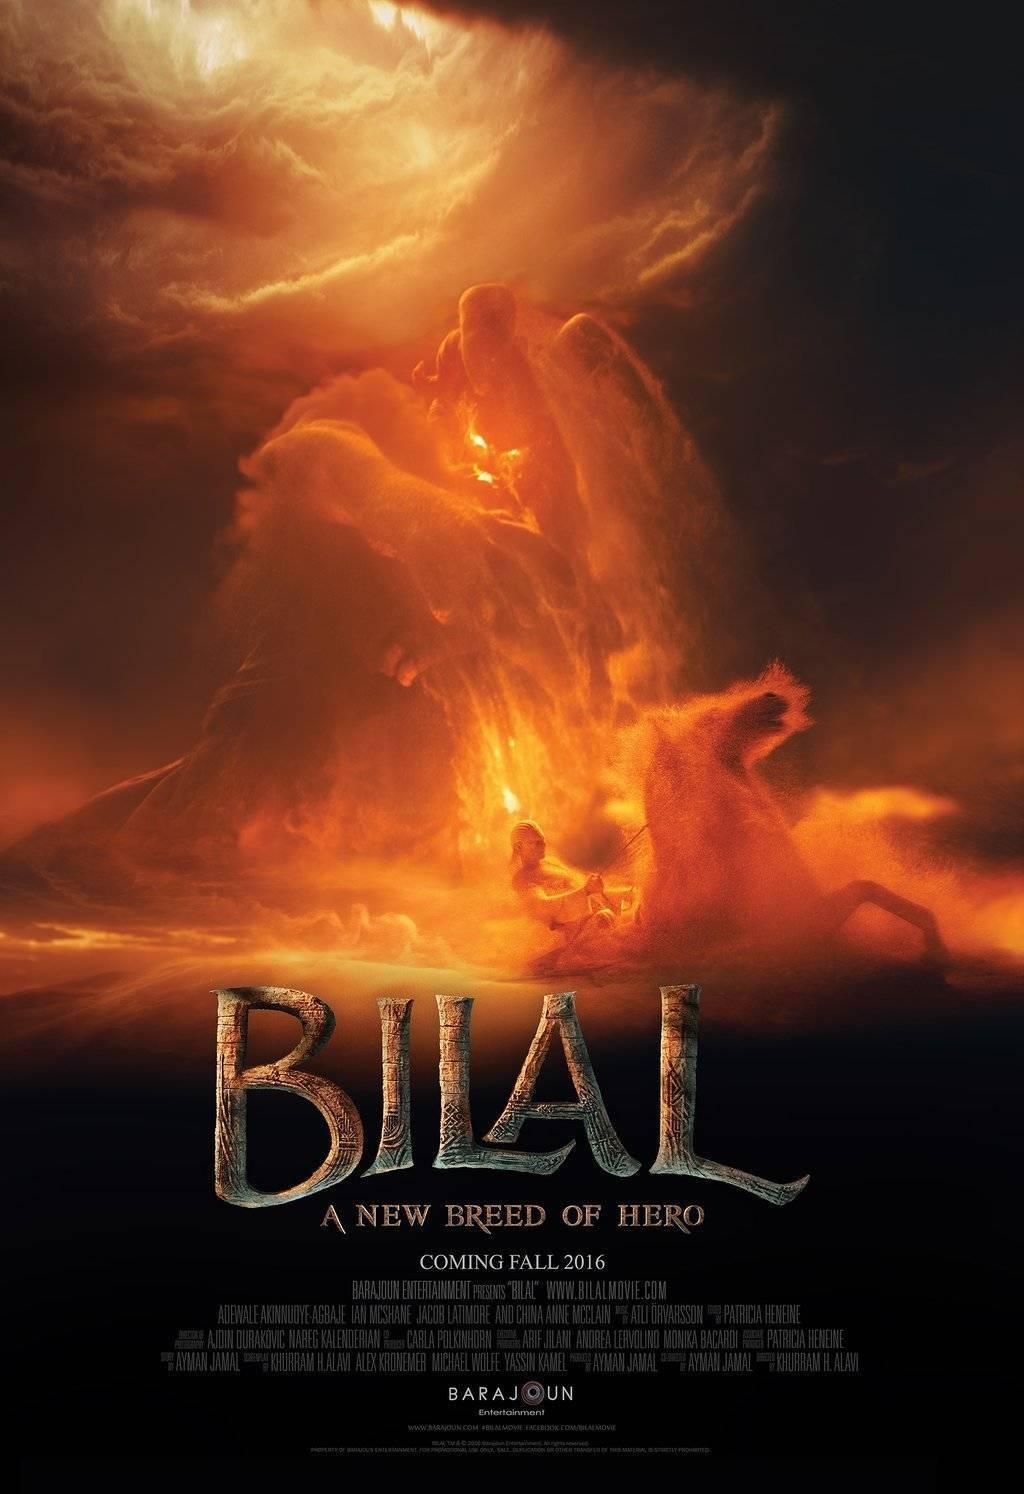 Bilal A New Breed of Hero en streaming complet. Regarder